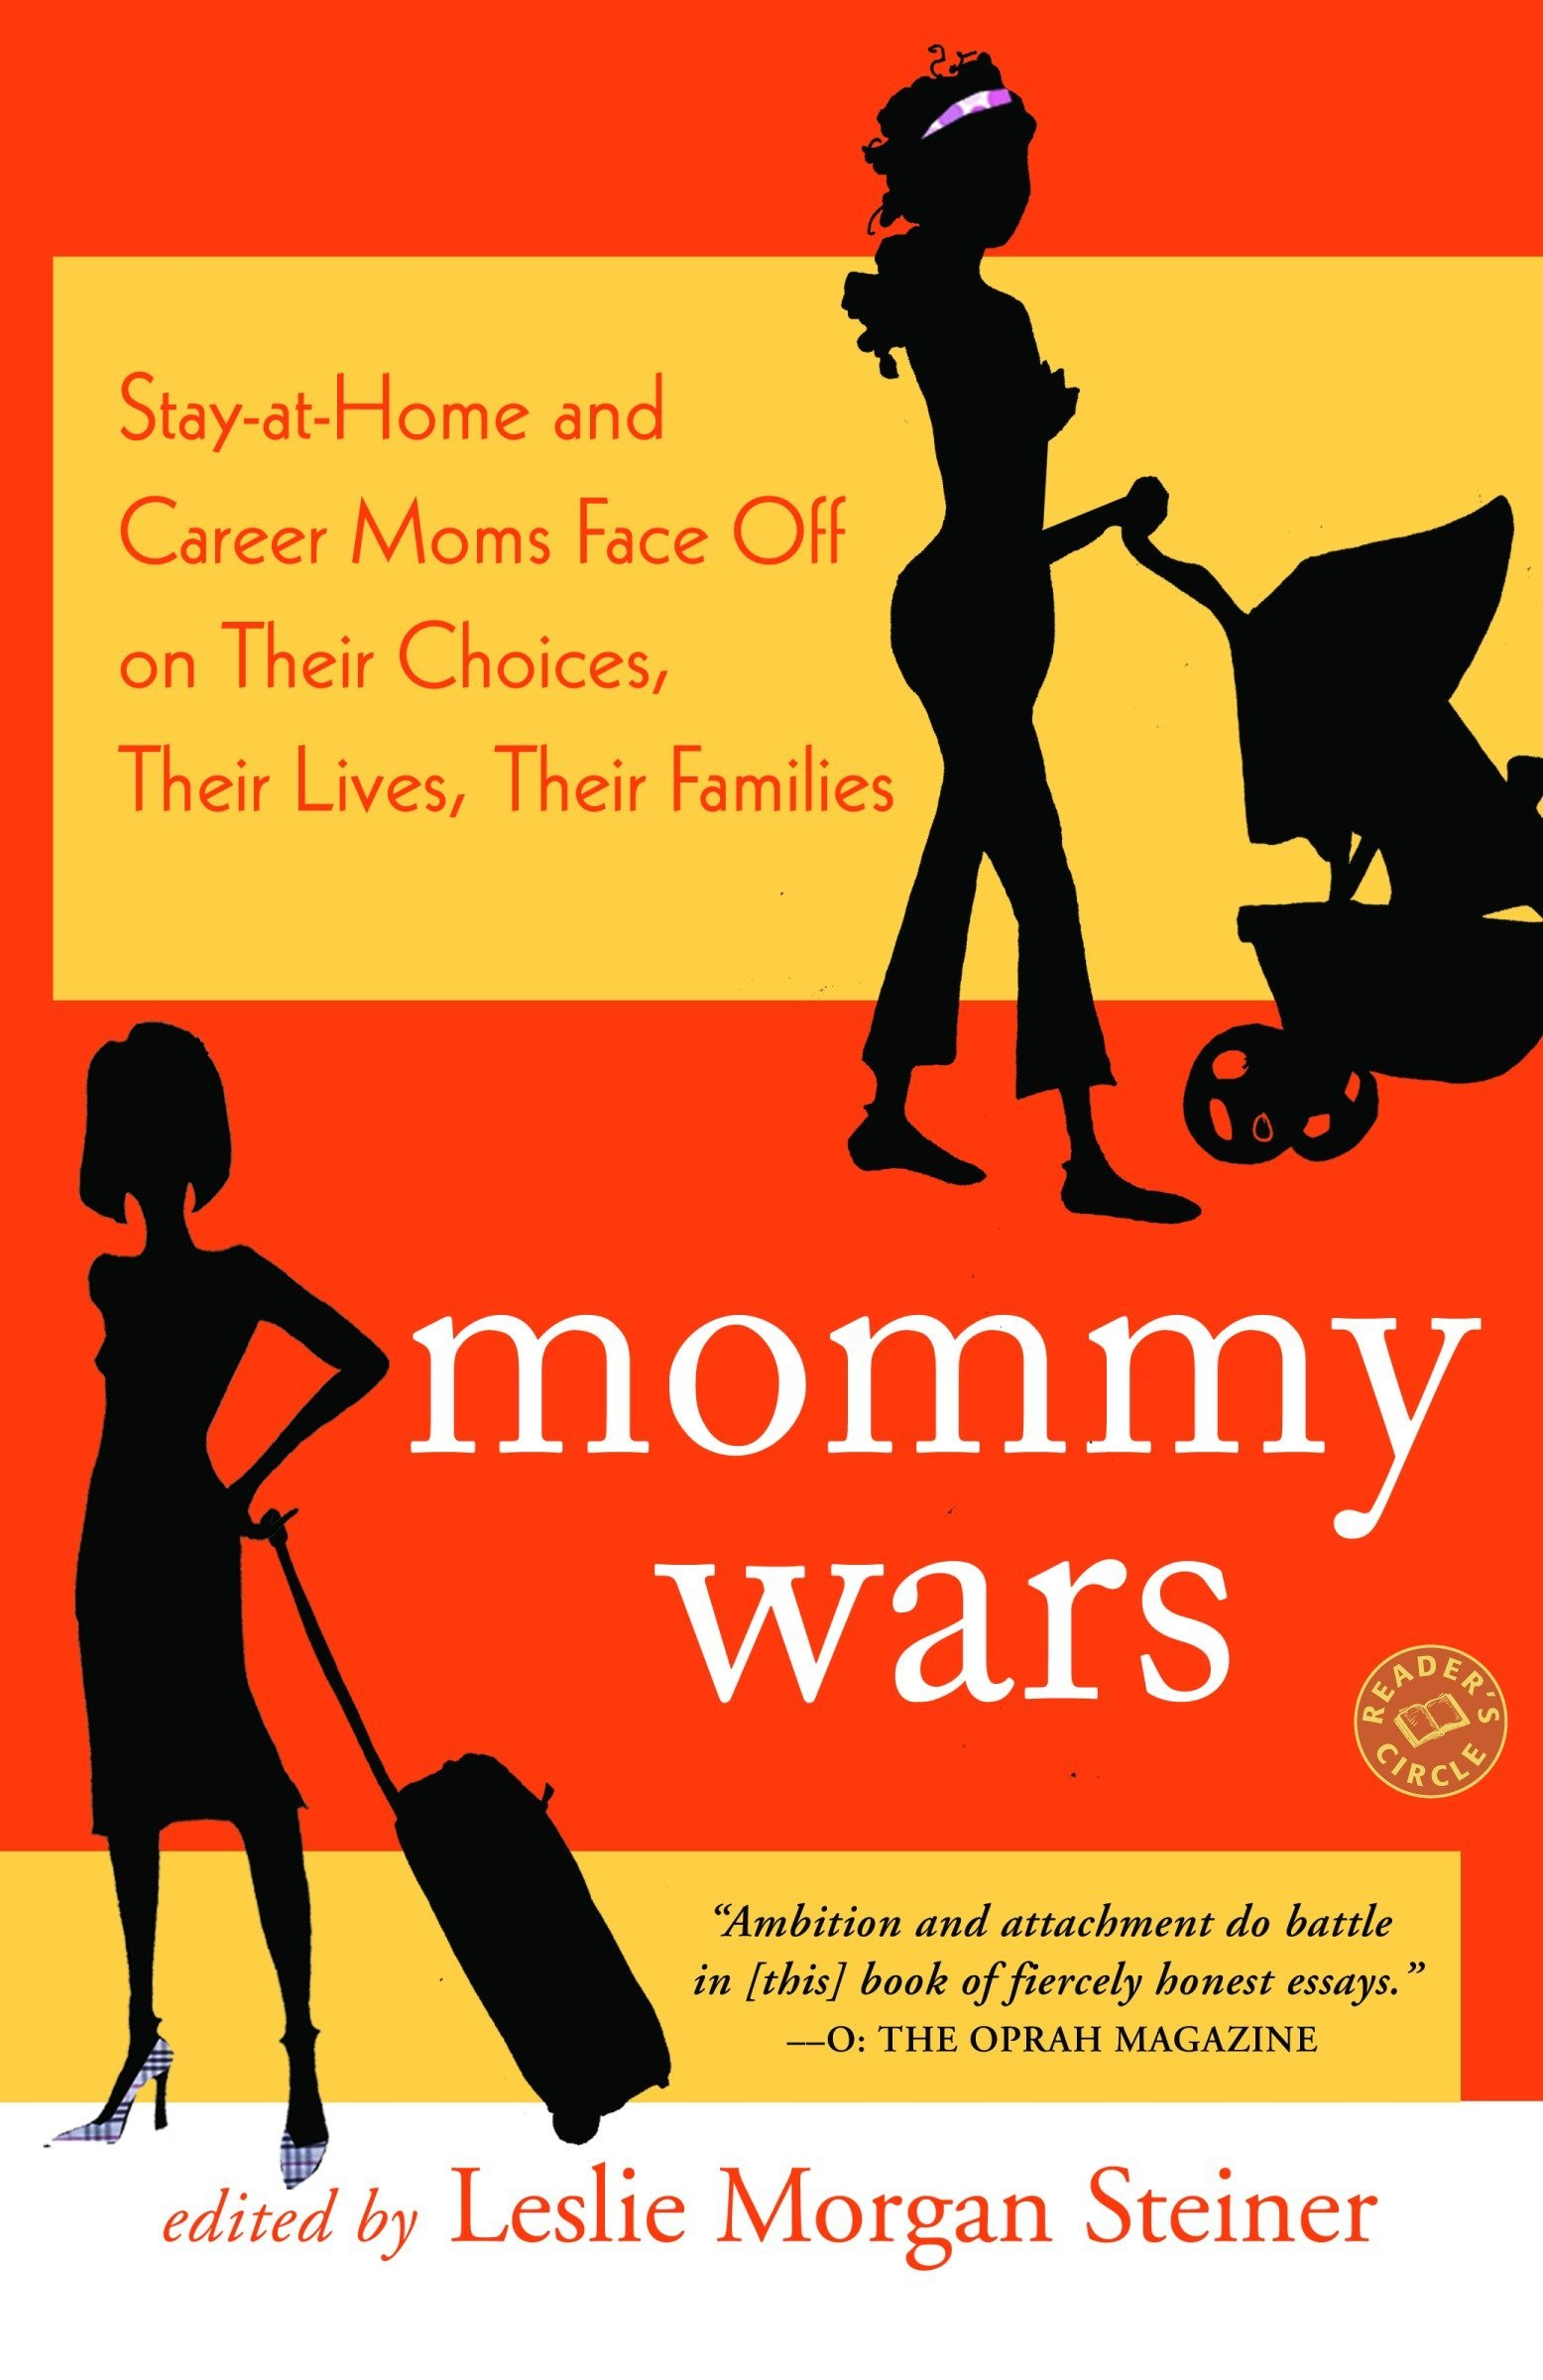 Mommy Wars: Stay-at-Home and Career Moms Face Off on Their Choices